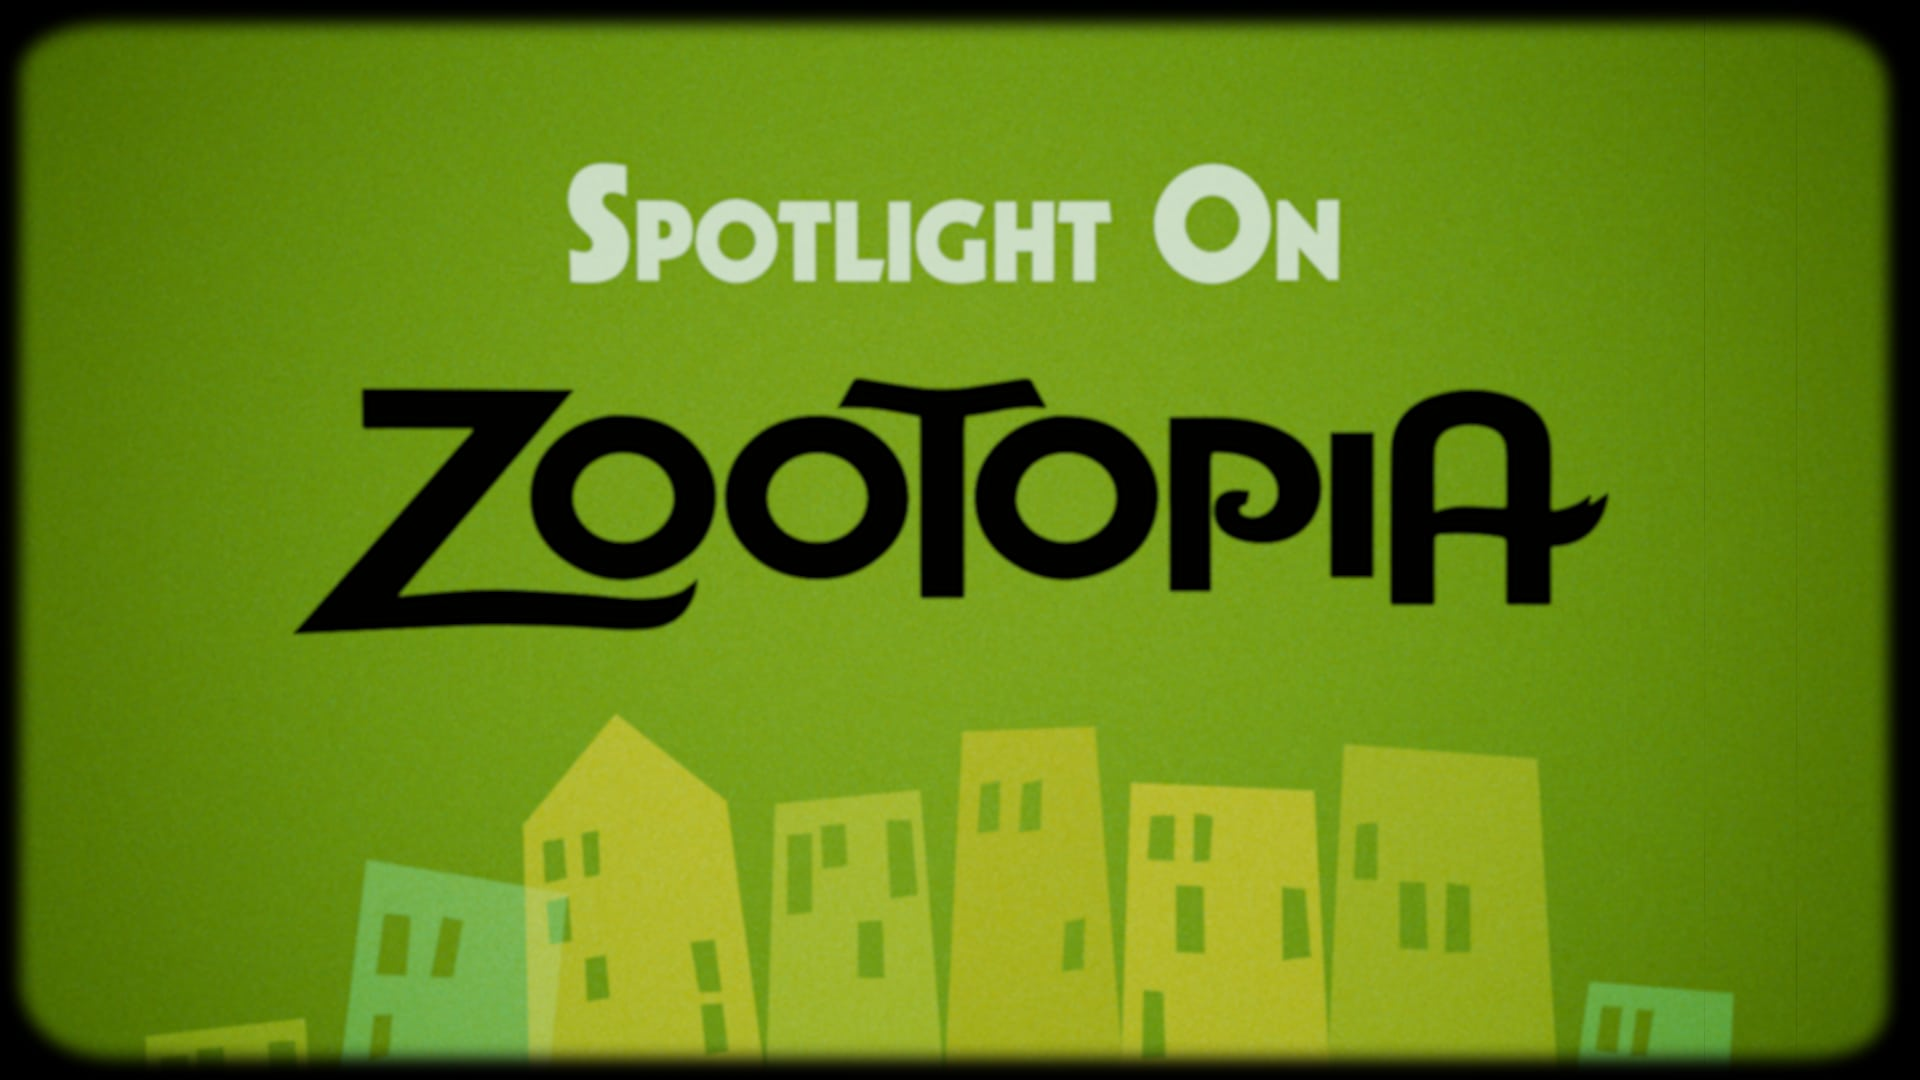 Spotlight on Zootopia | Disney